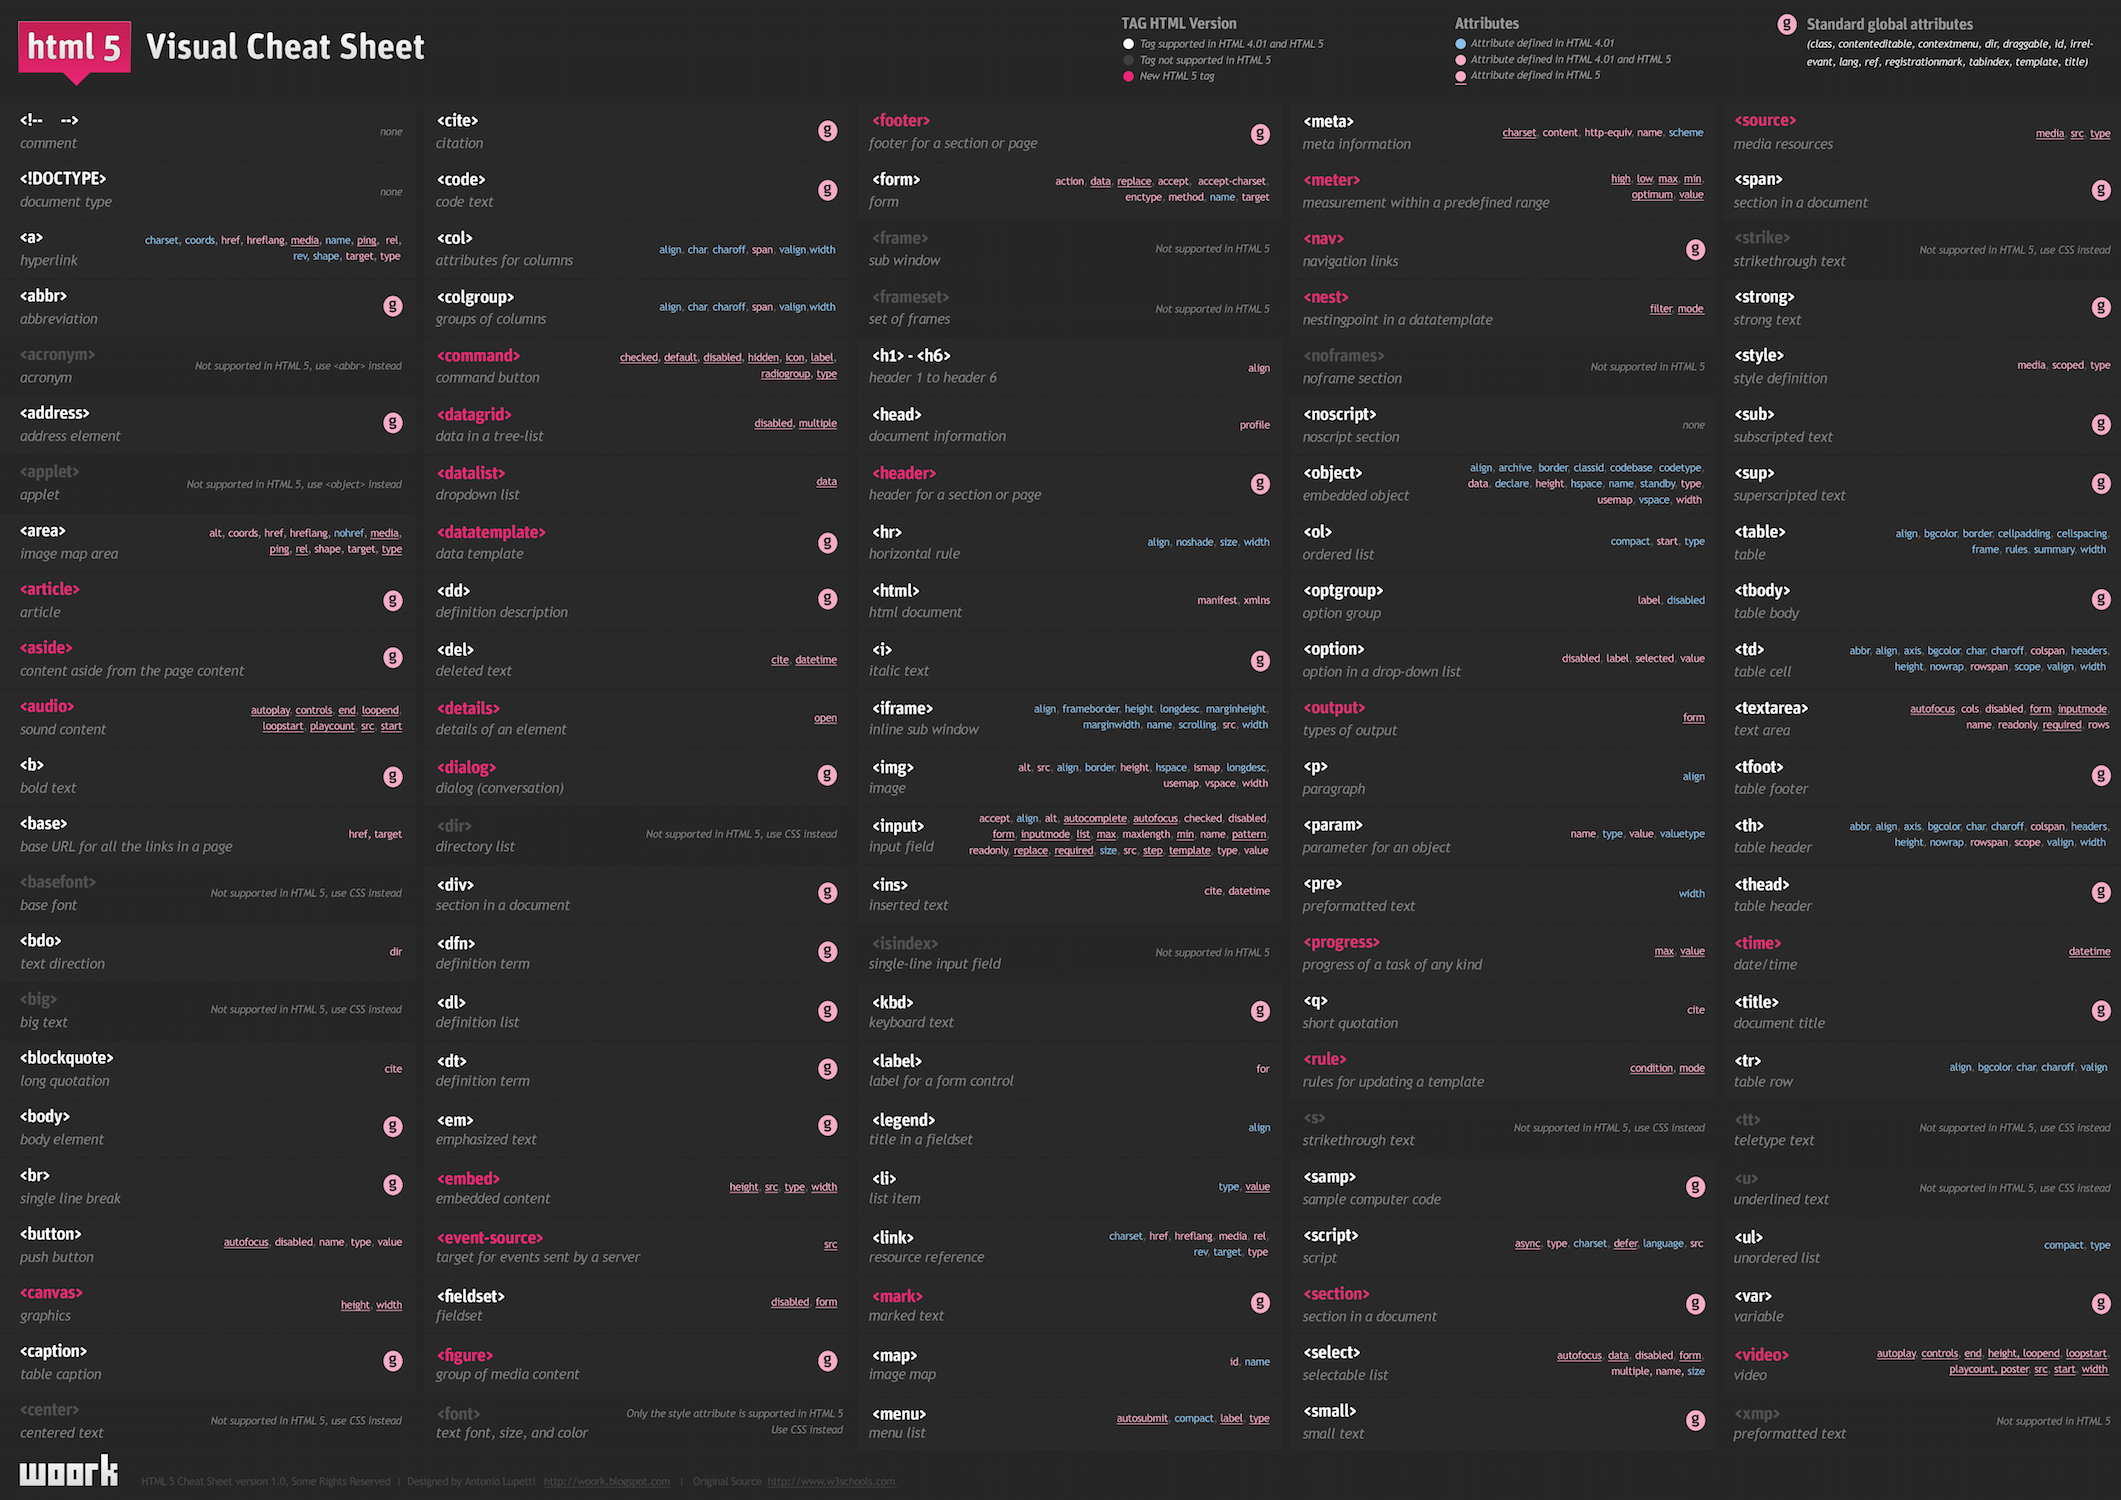 HTML 5 Cheat Sheet by Woork